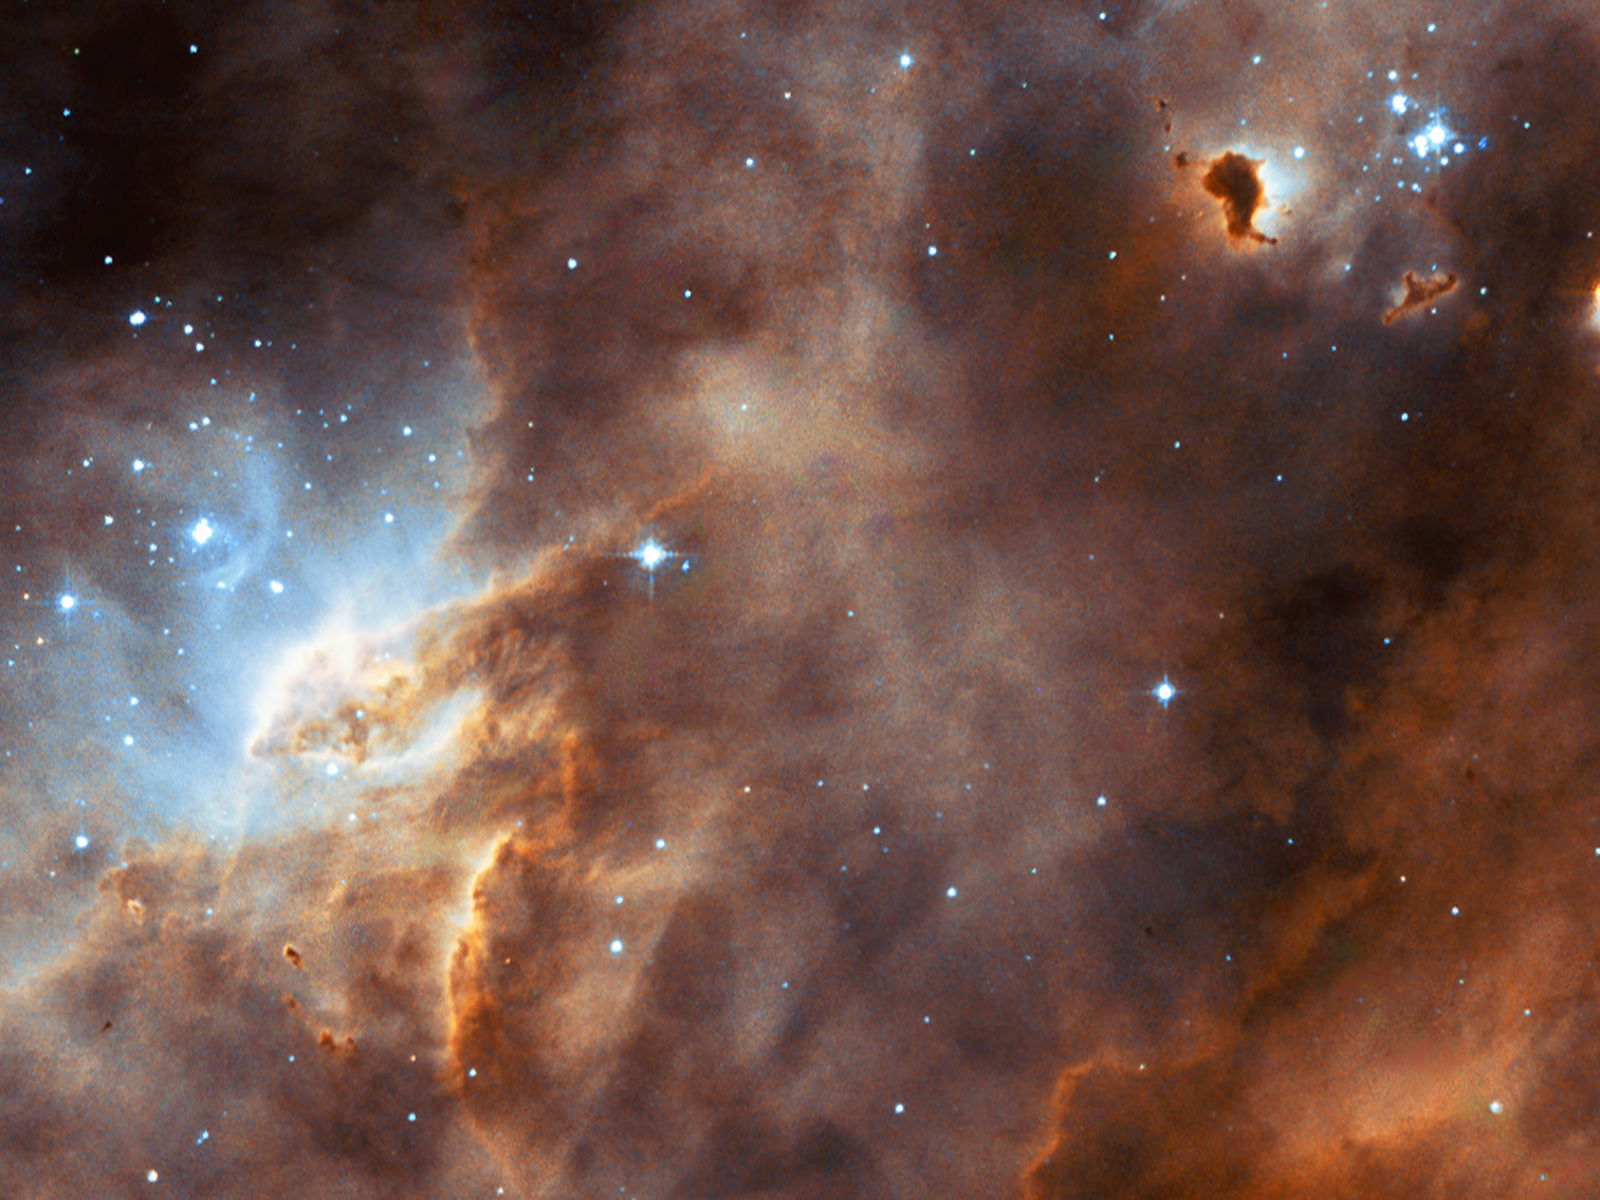 Hubble Space Telescope Wallpaper   Pics about space 1600x1200